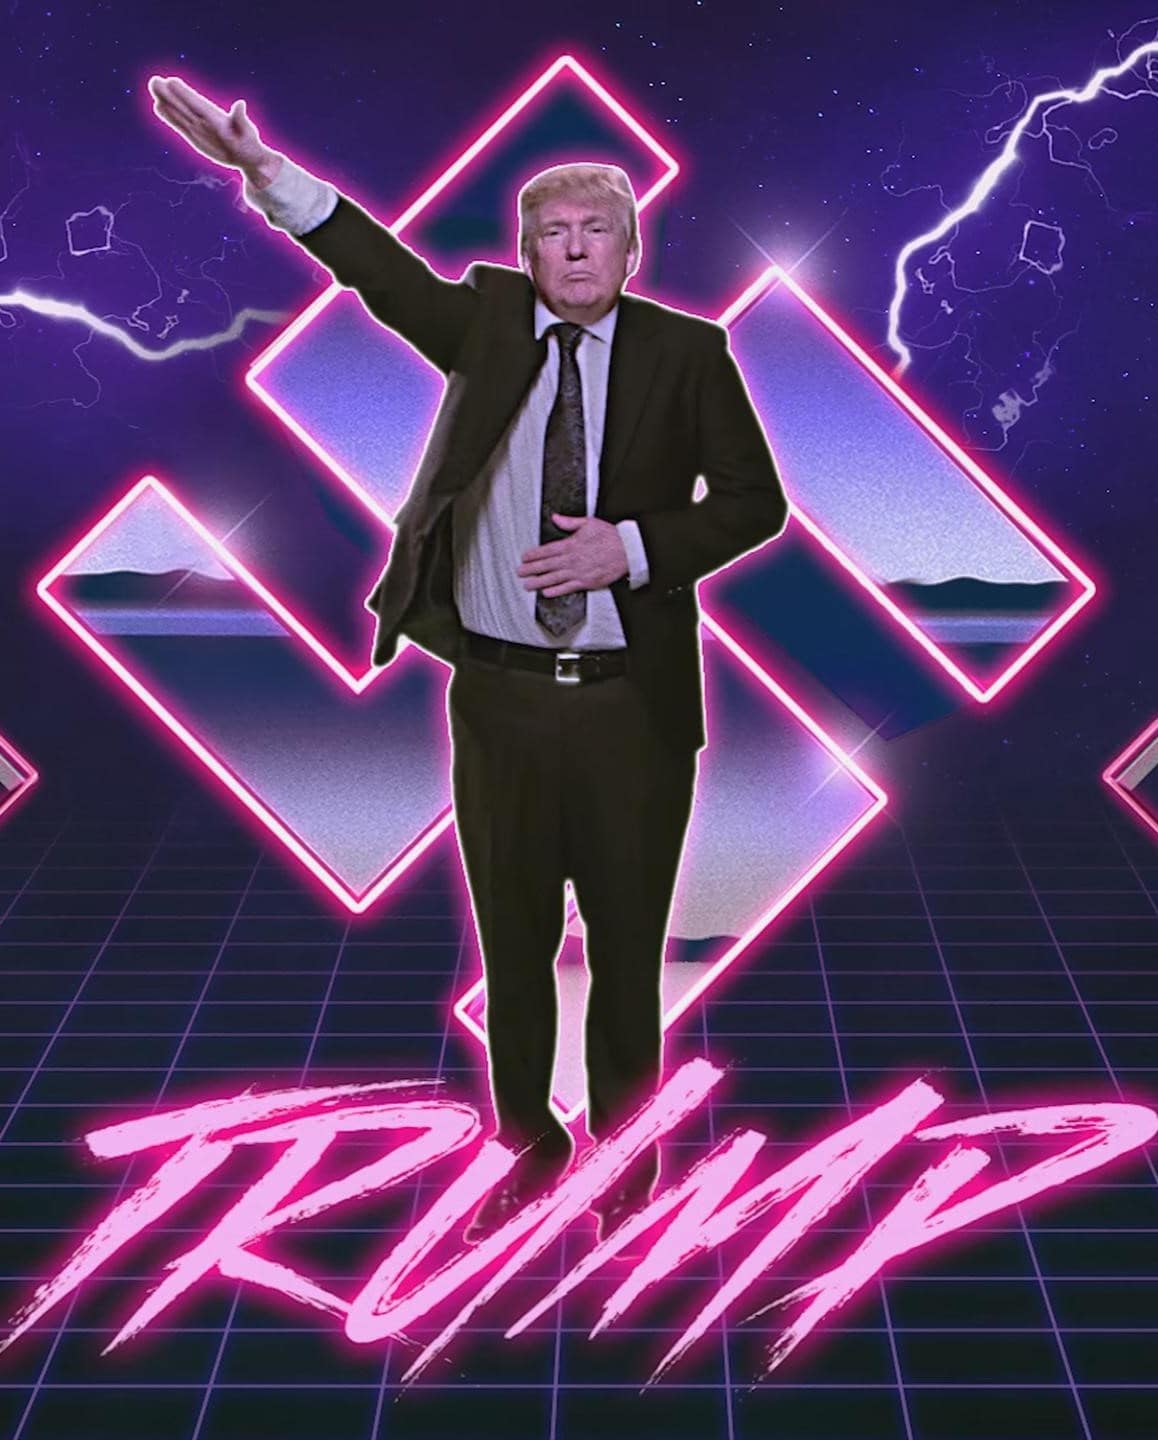 Donald Trump Lockscreens